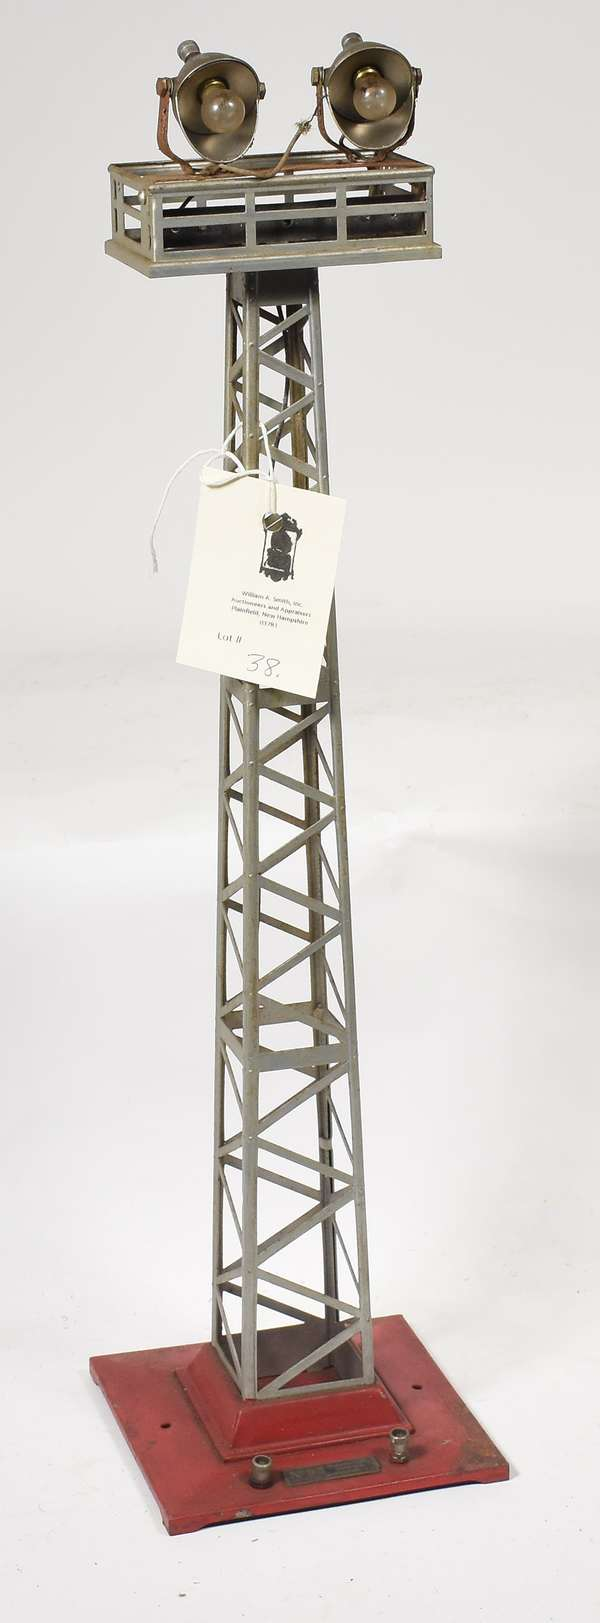 Lionel 92 Floodlight Tower